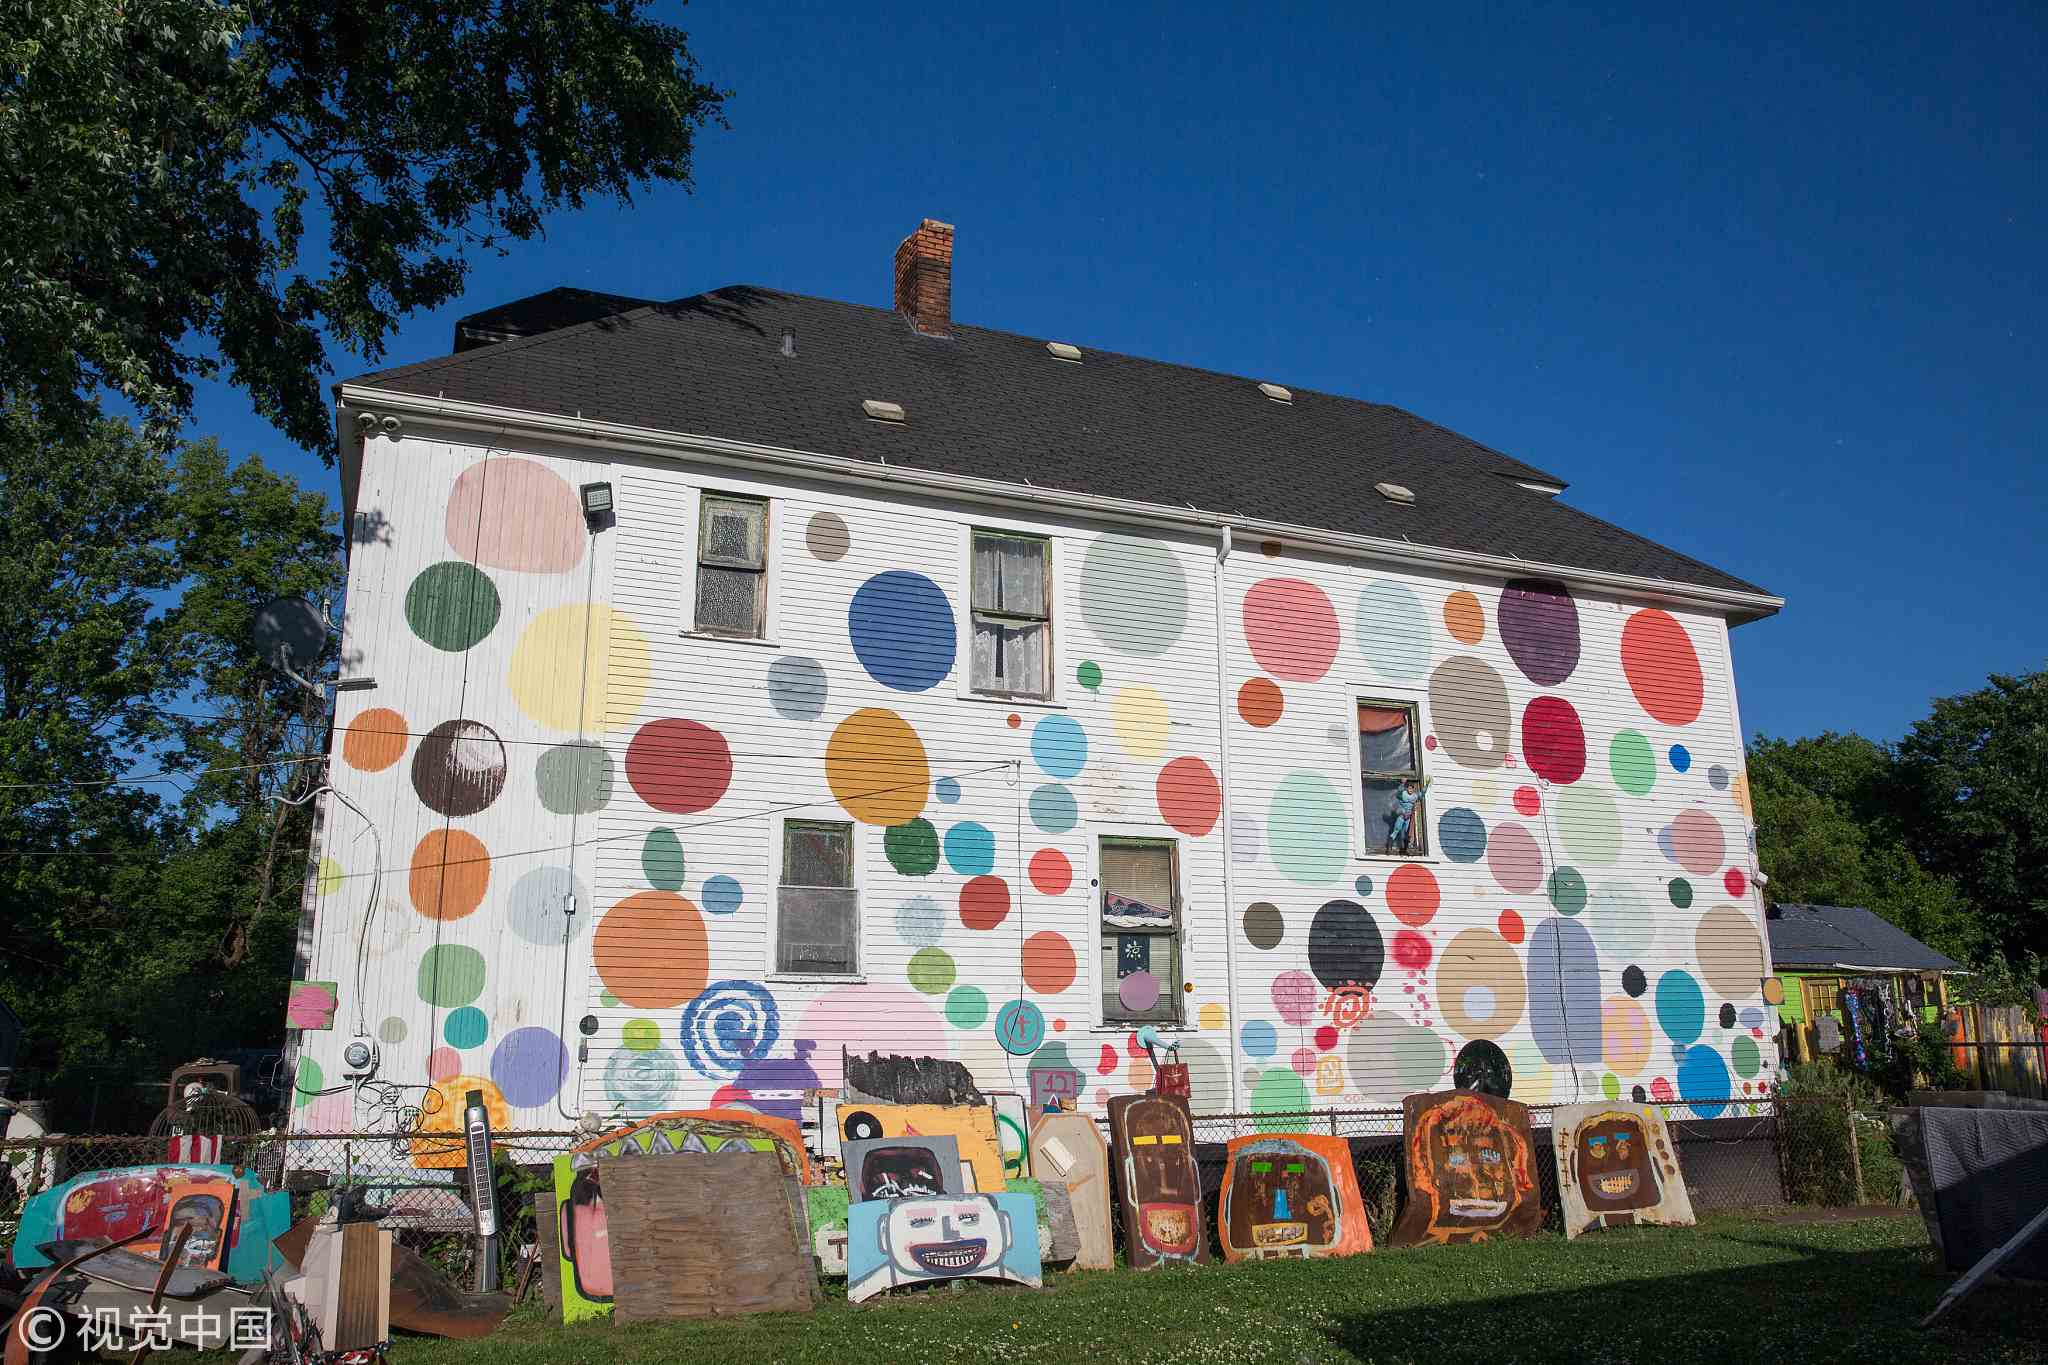 American artist use waste to save a dumped community